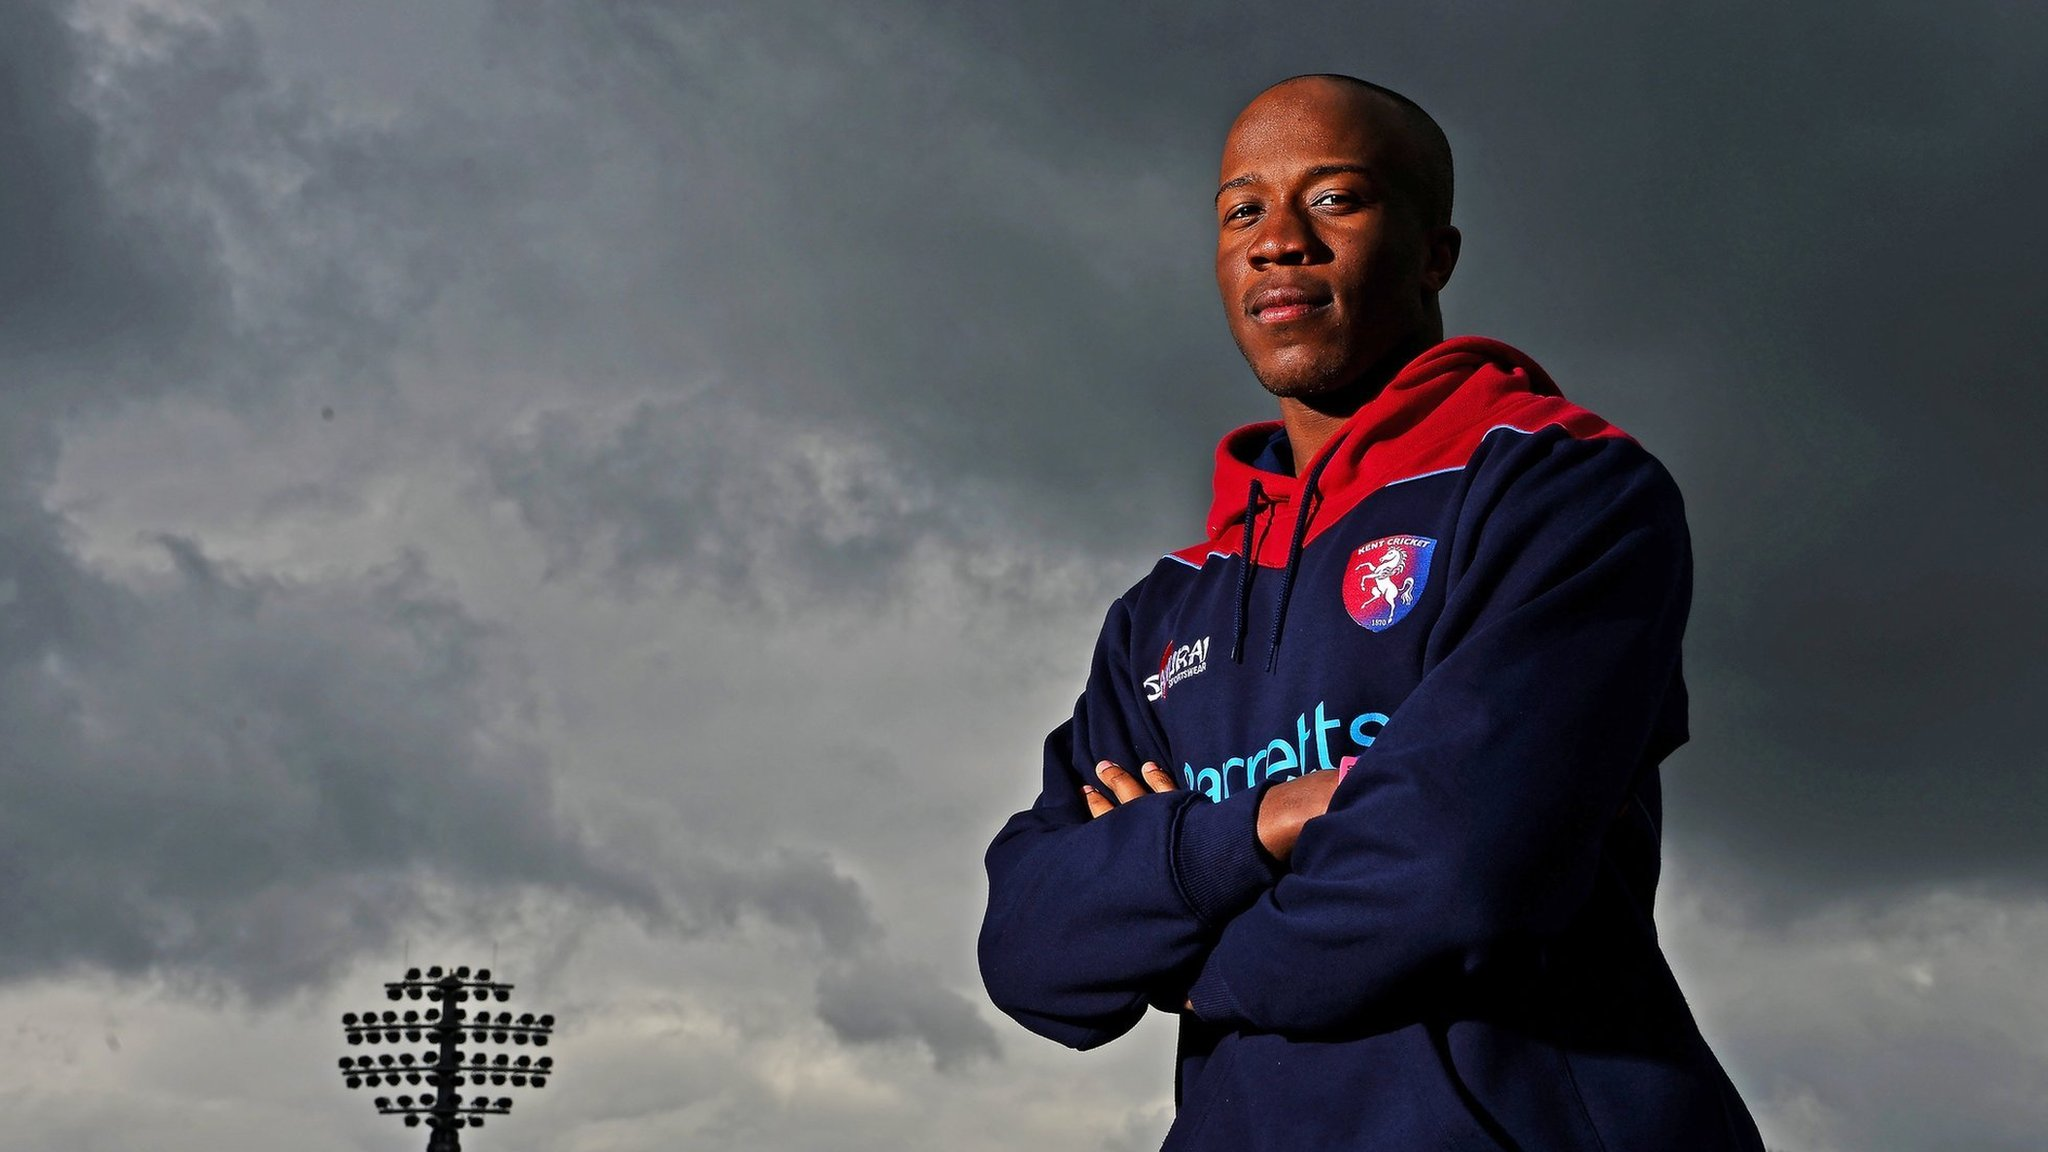 BBC Get Inspired: Where are all the black English cricketers?